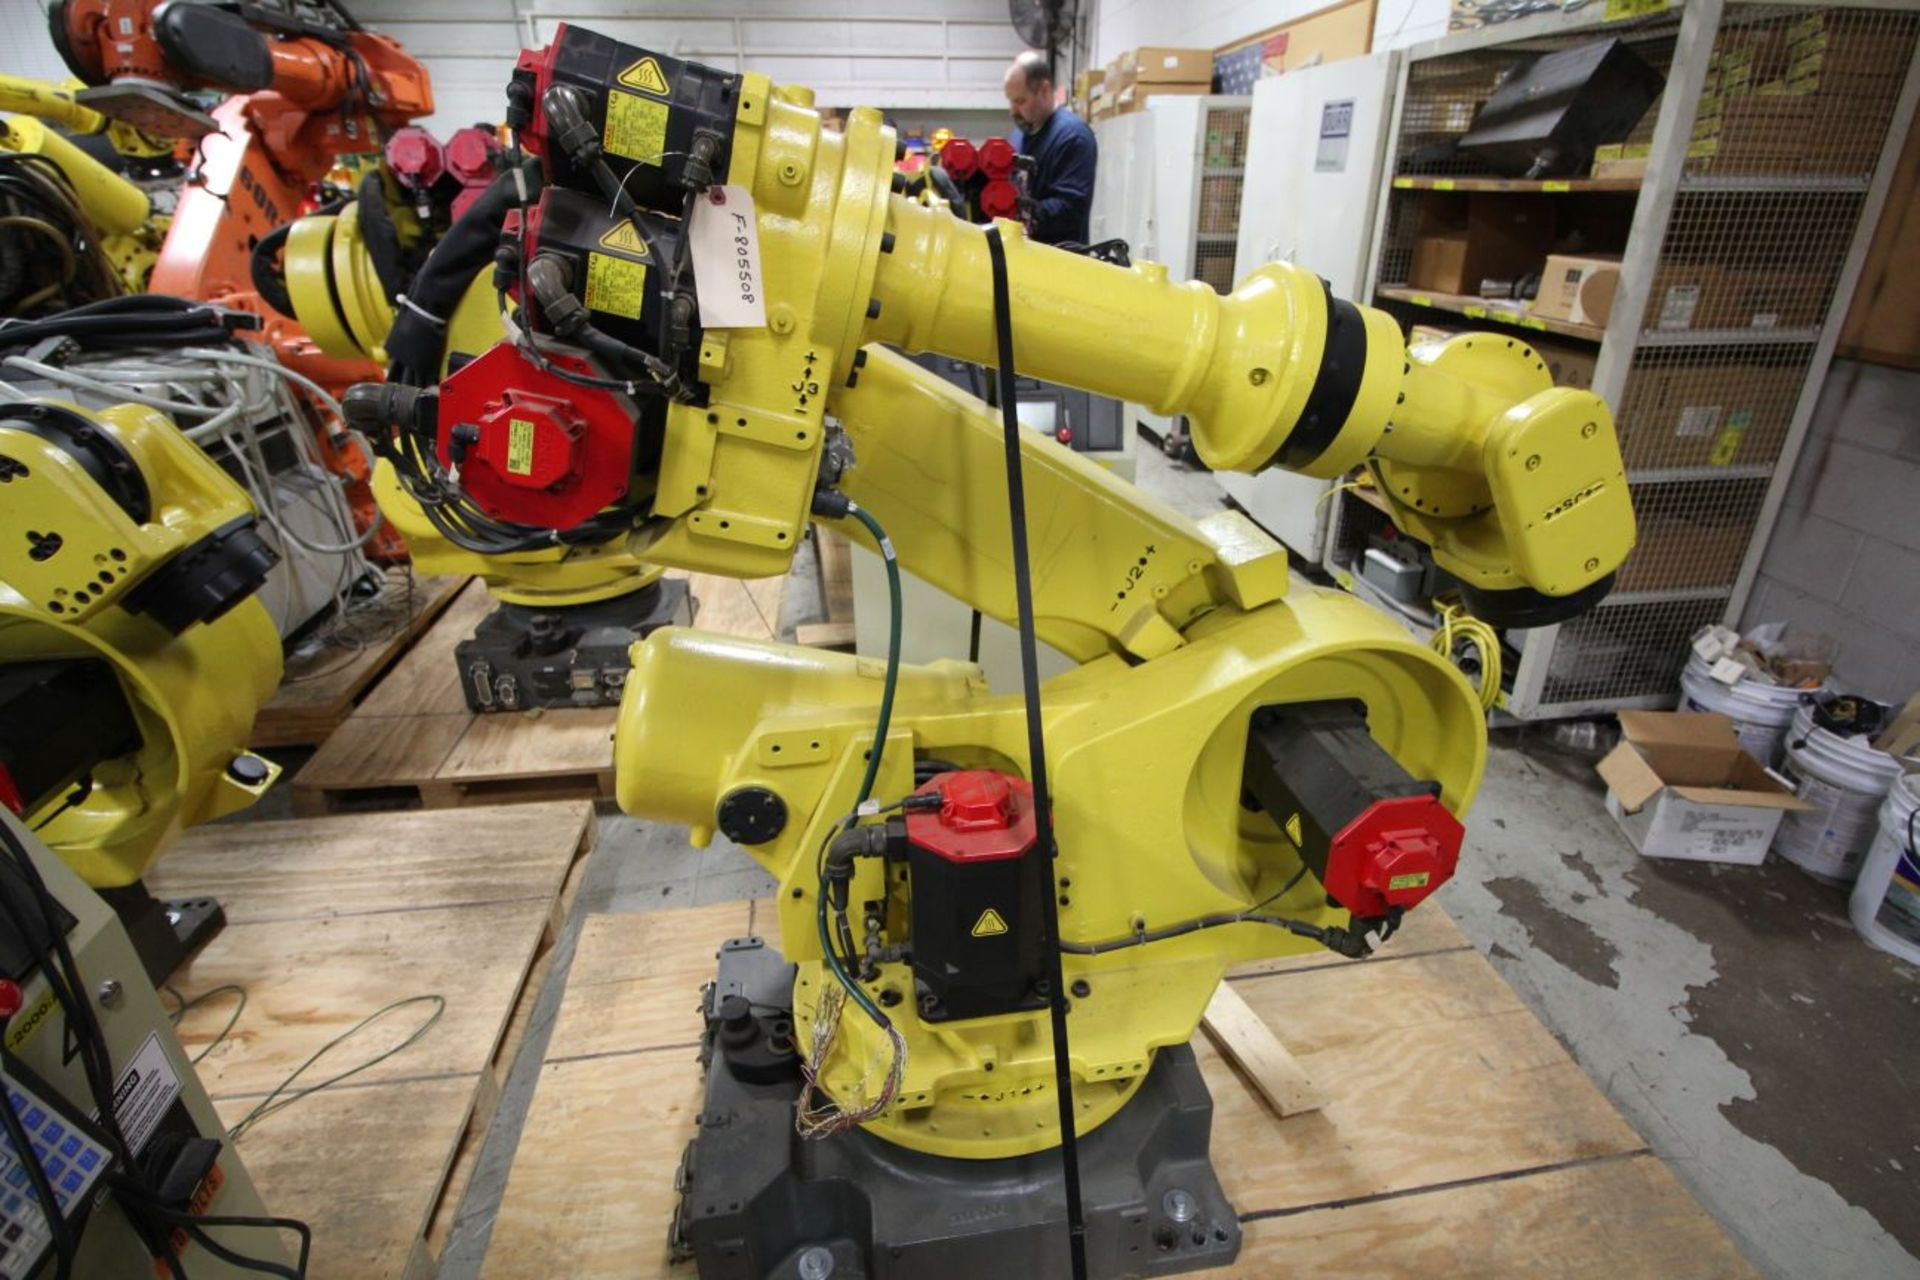 Lot 32 - FANUC ROBOT R2000iA/200FO WITH R-J3iB CONTROLS, TEACH & CABLES, YEAR 2006, SN 76891, COMP REFURBED.